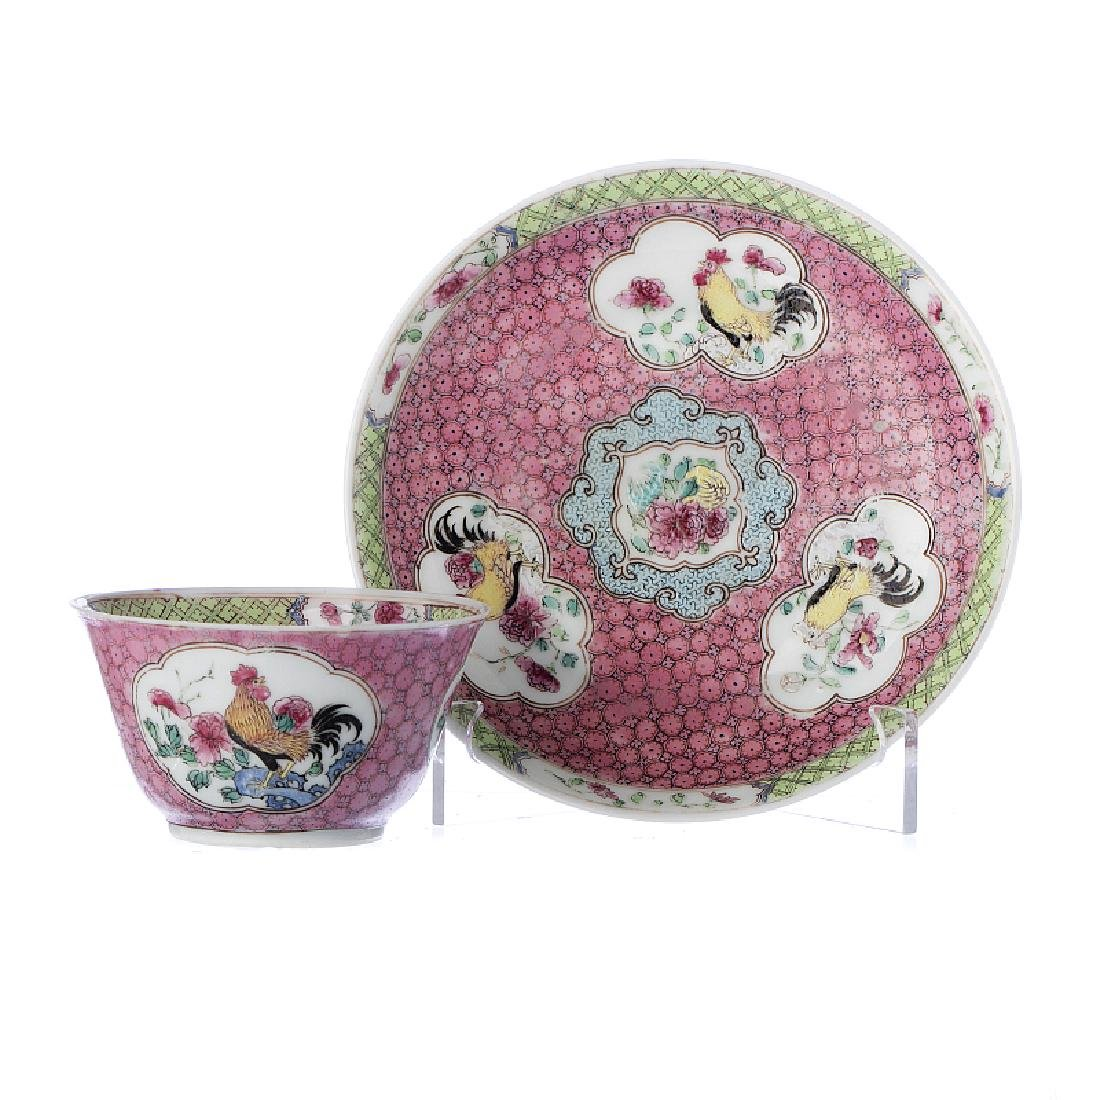 Chinese porcelain  'Rooster' Teacup and Saucer,